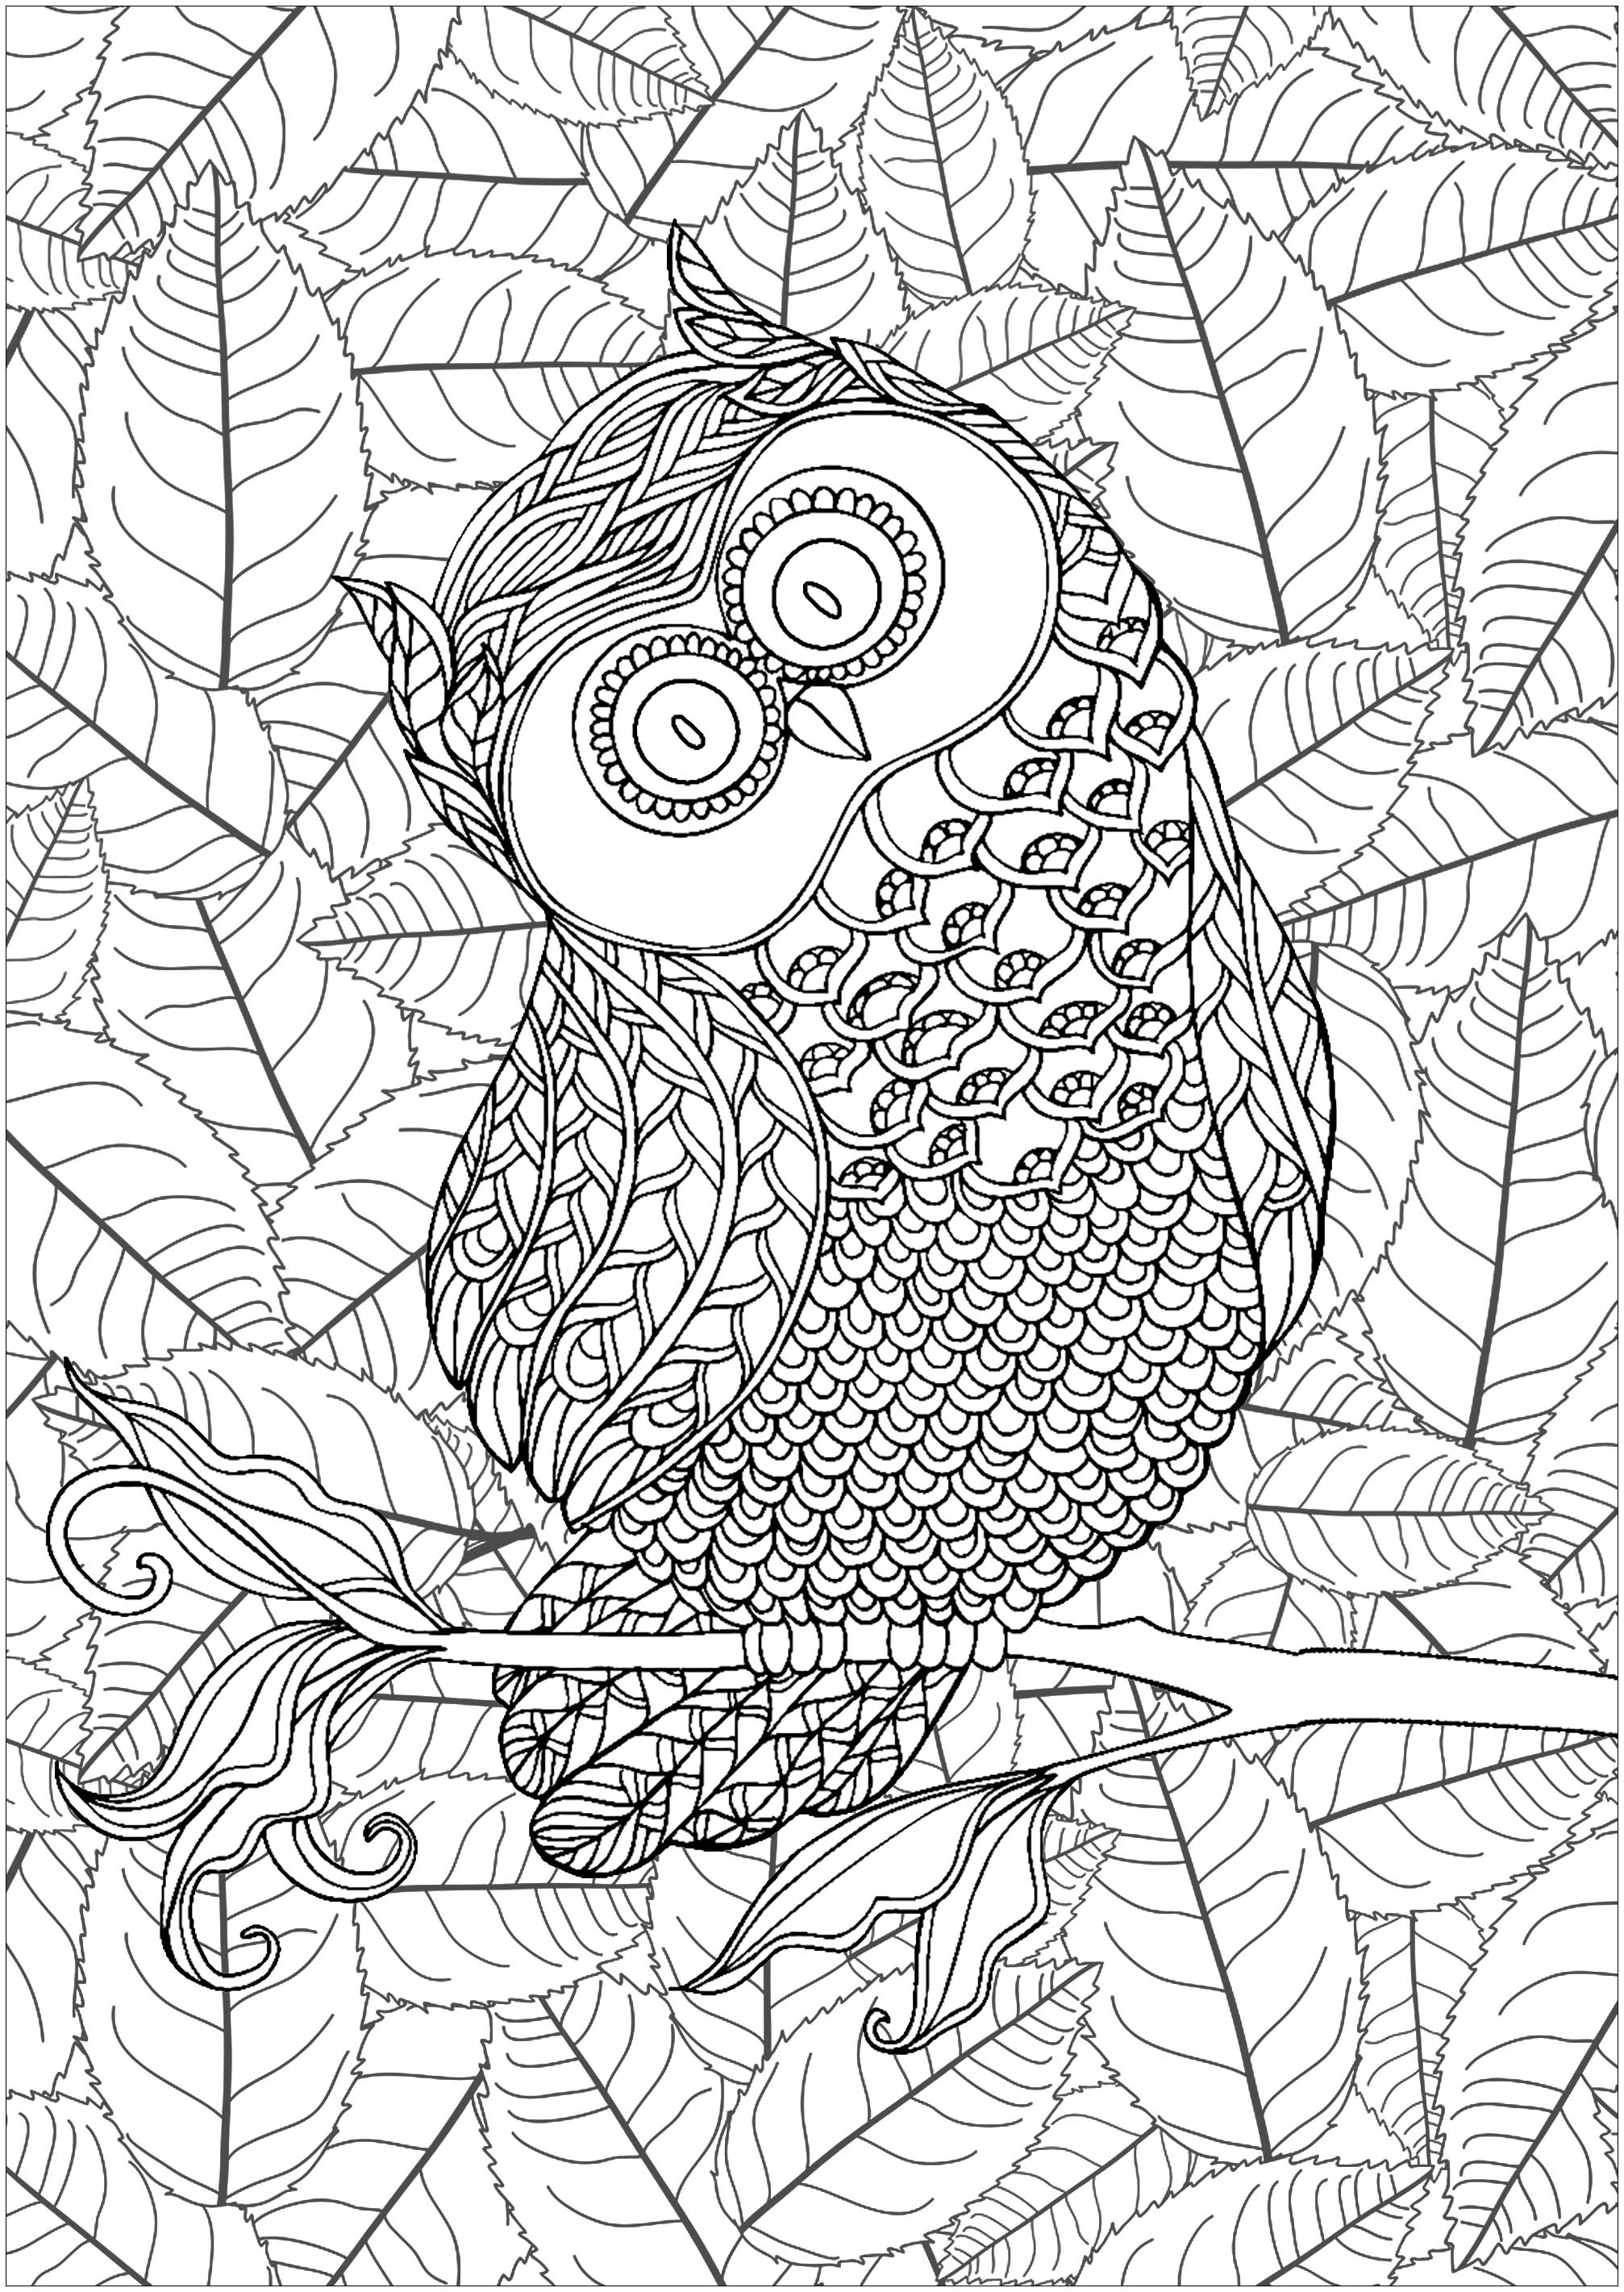 Cute mischievous owl with background full of interleaved leaves